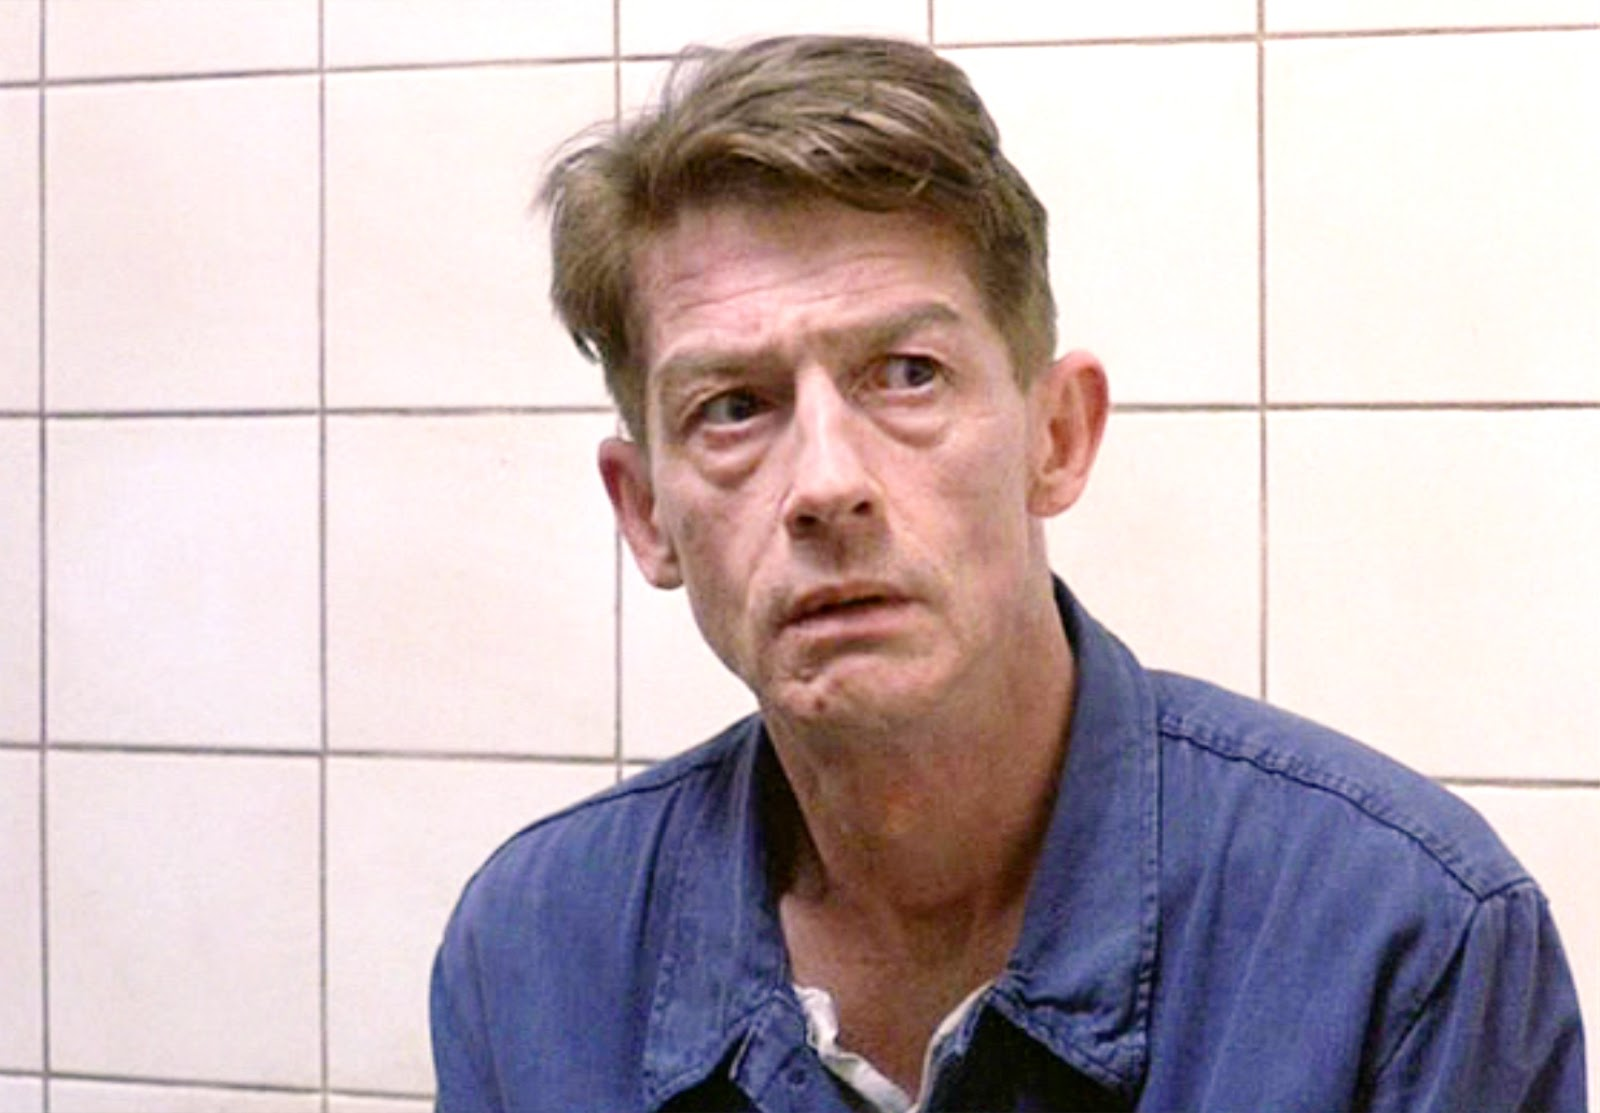 1984 about winston John hurt (1984) information affiliation, outer party family, unnamed mother  unnamed father unnamed younger sister spouse(s), katharine winston smith  is a fictional character and the protagonist of george orwell's 1949 novel.